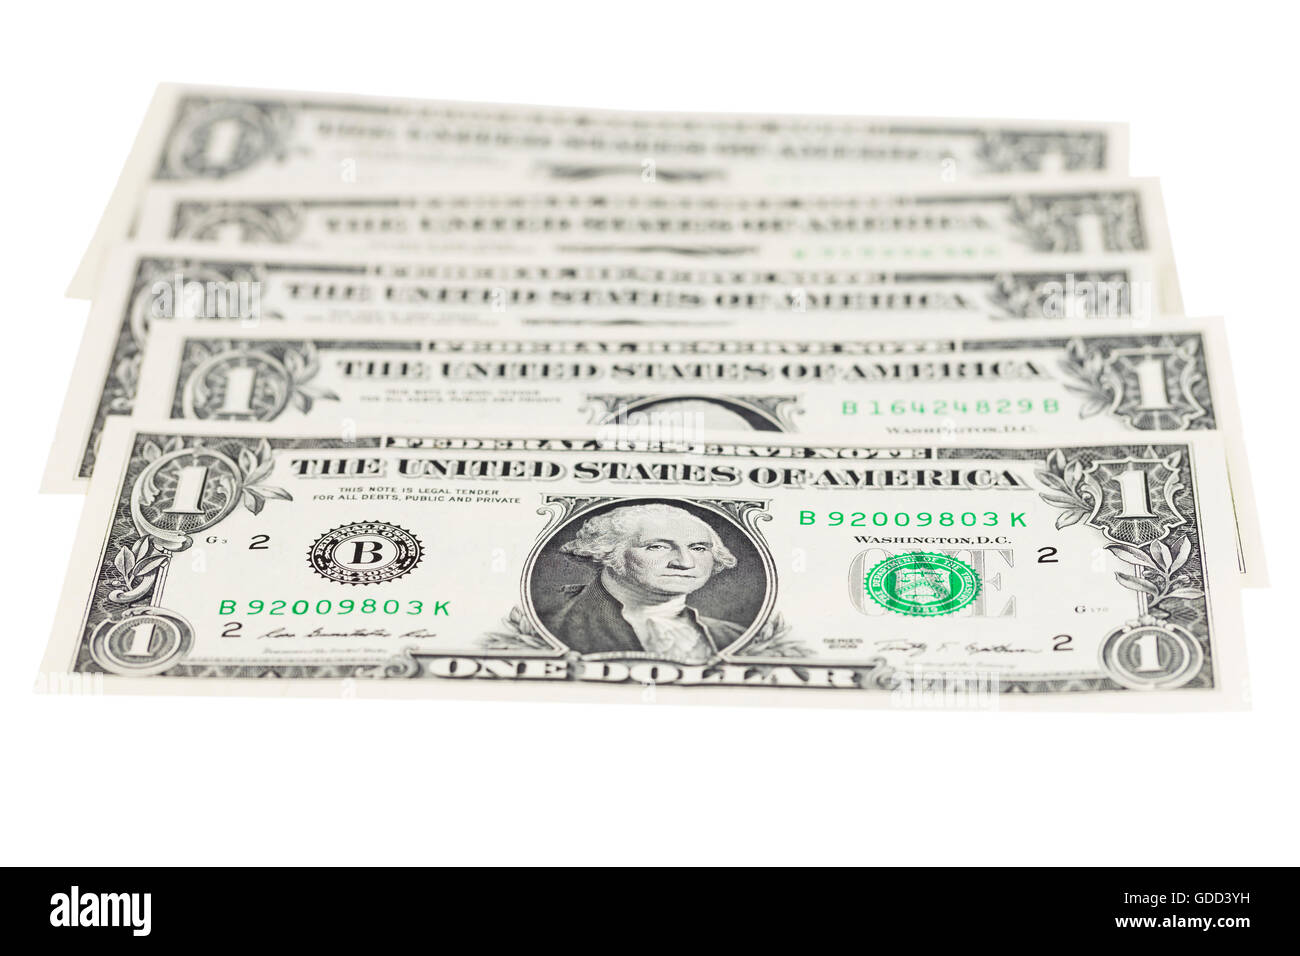 USA one dollar banknotes - Stock Image